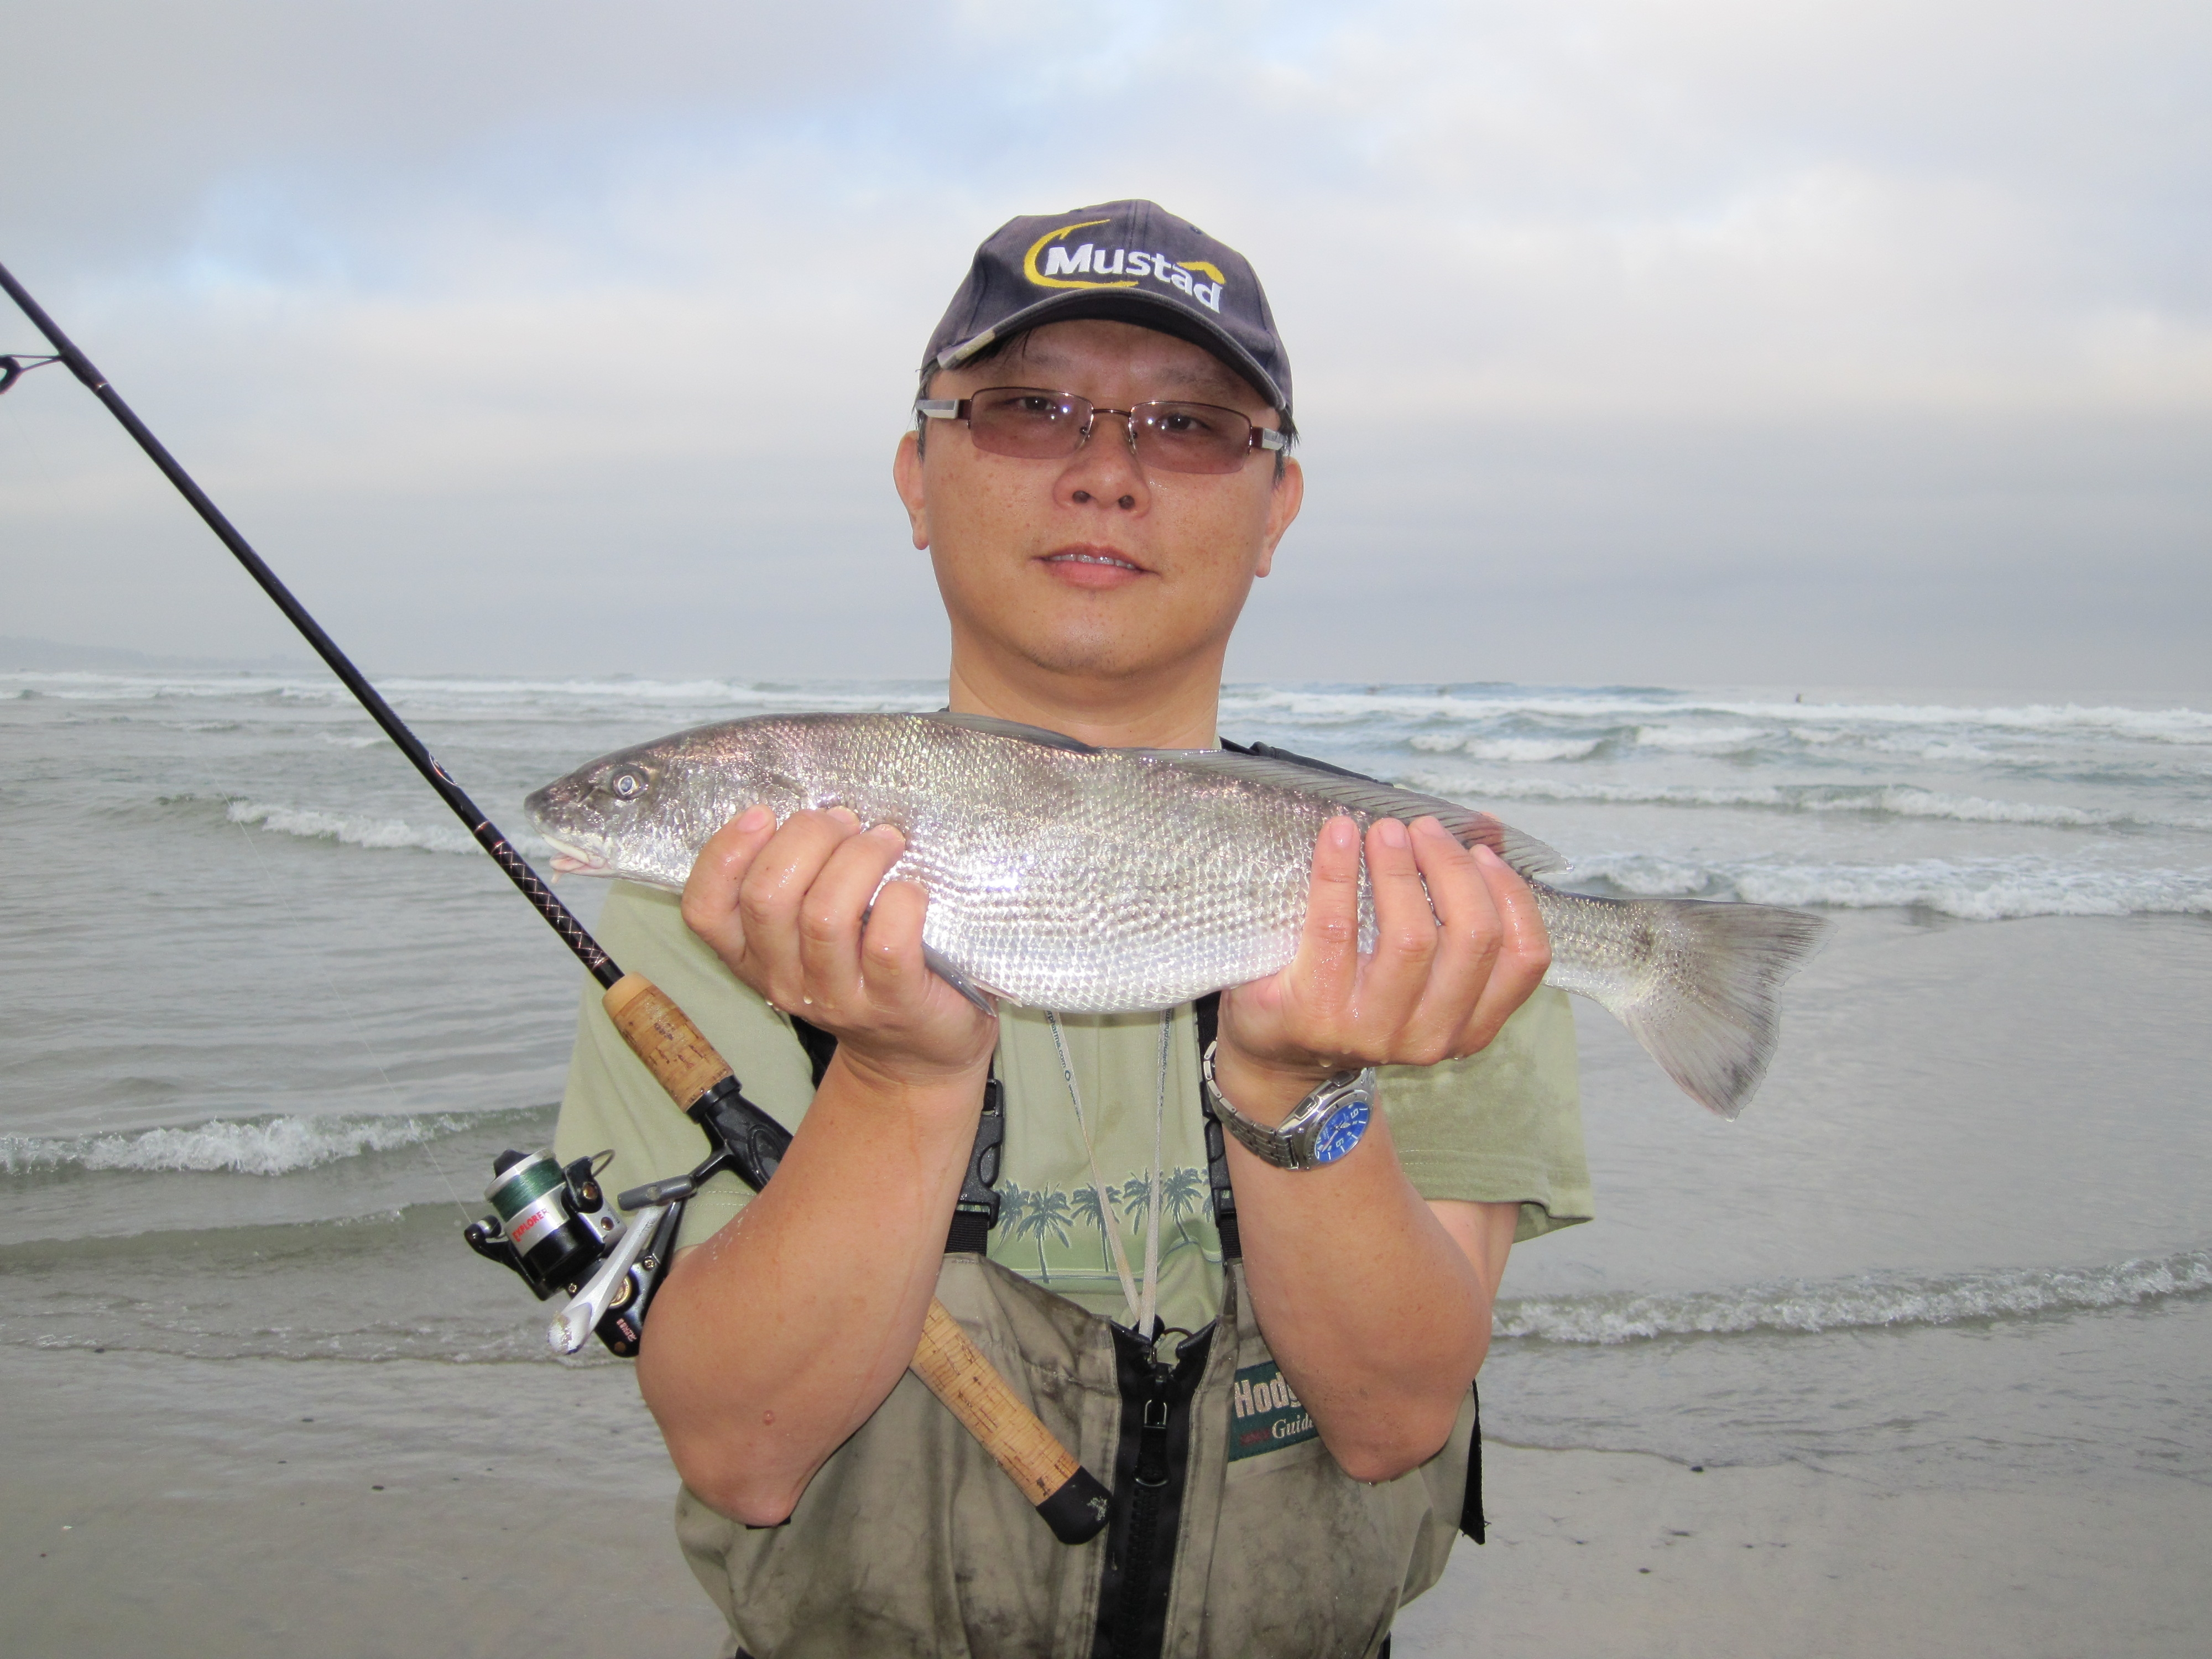 Man with his catch after surf fishing